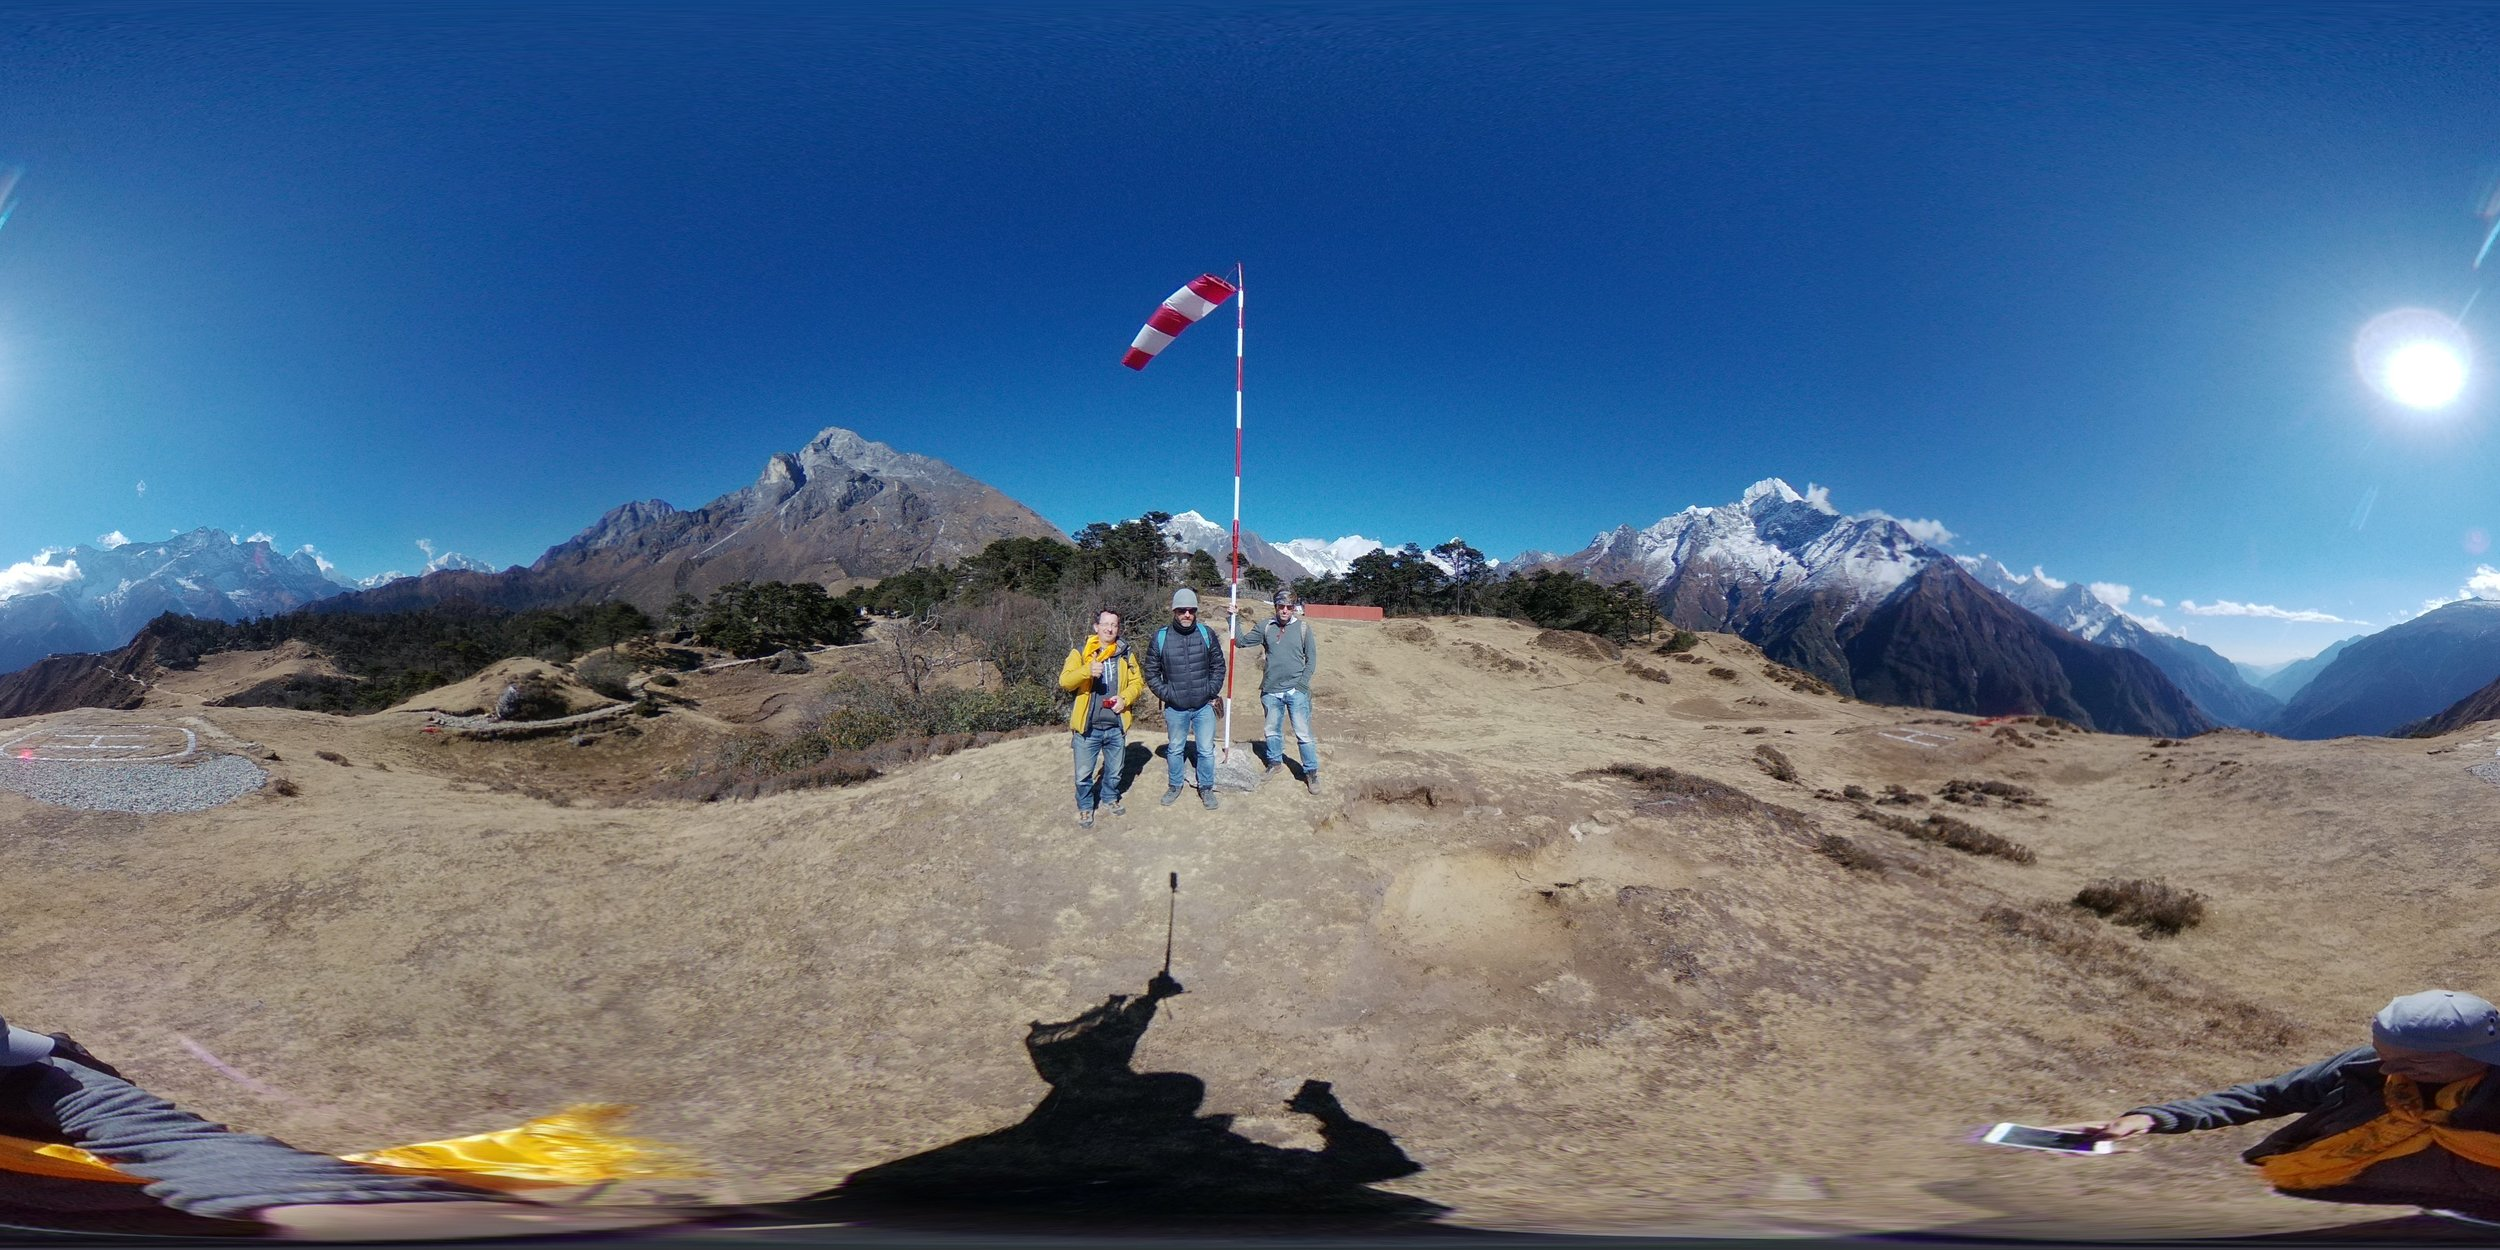 Helicopter Ride Near Mt Everest